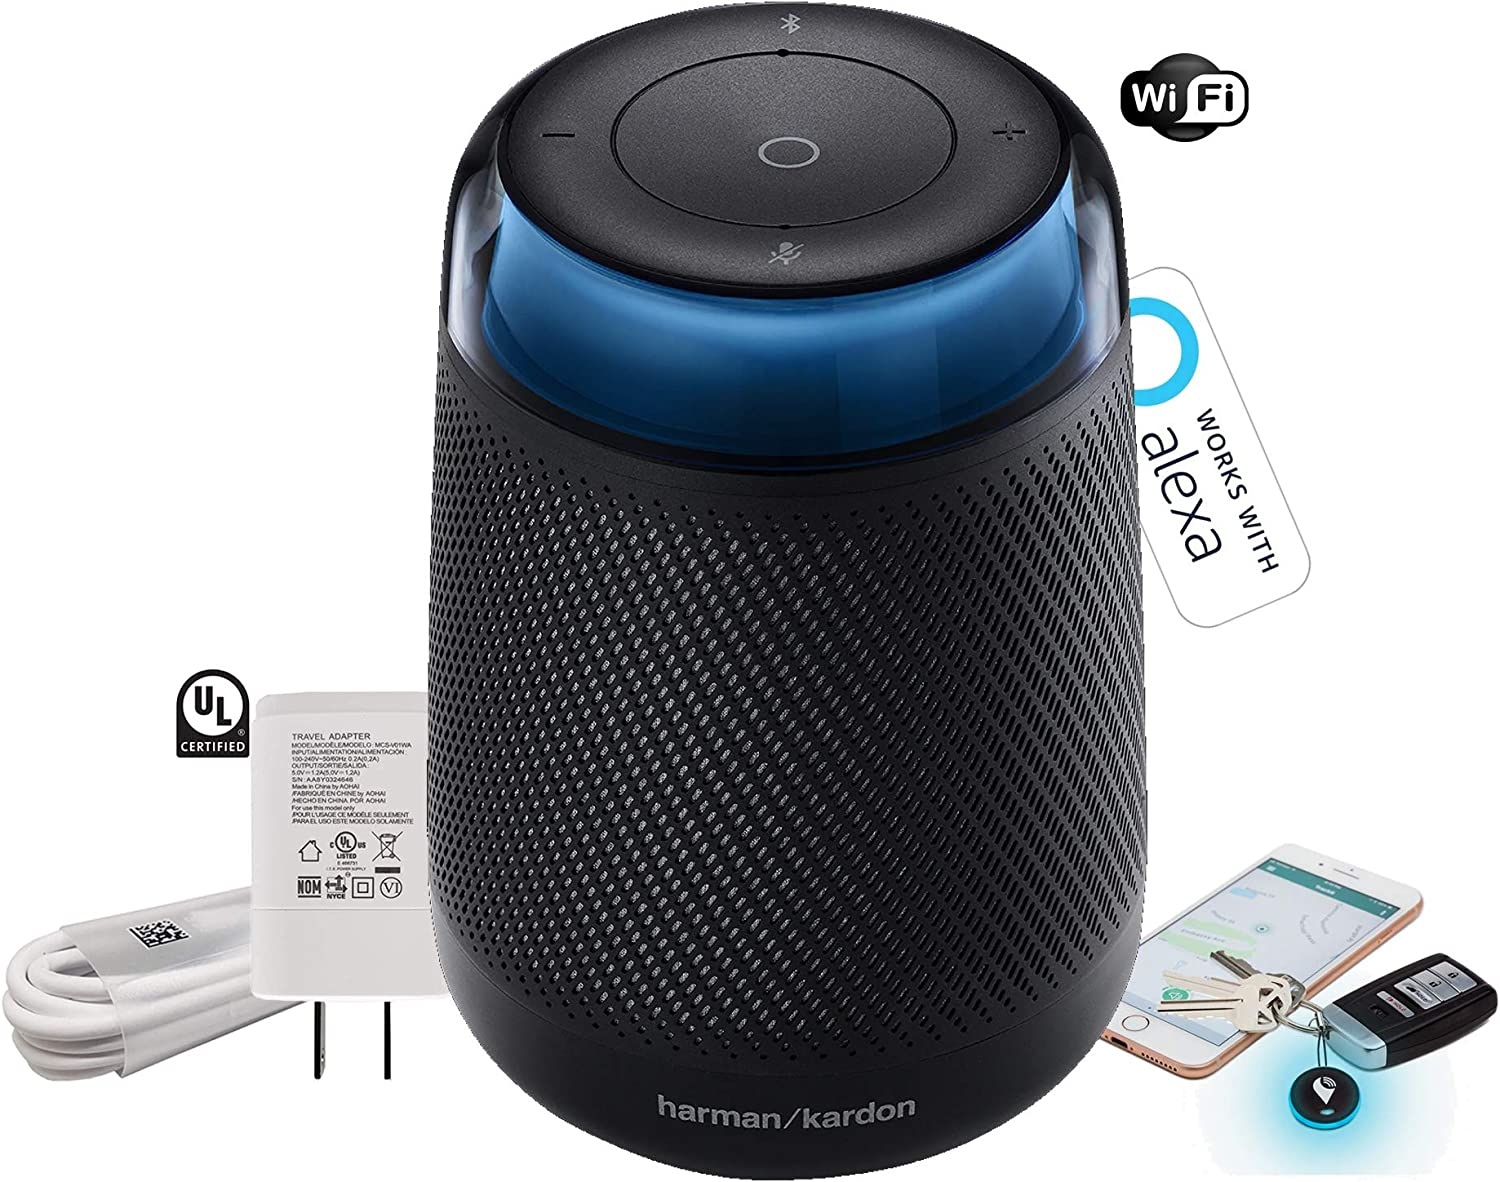 with Charger Harman Kardon Allure 360 Degree Voice-Activated Built-in Alexa Home Speaker -WiFi Item Tracker Black Renewed